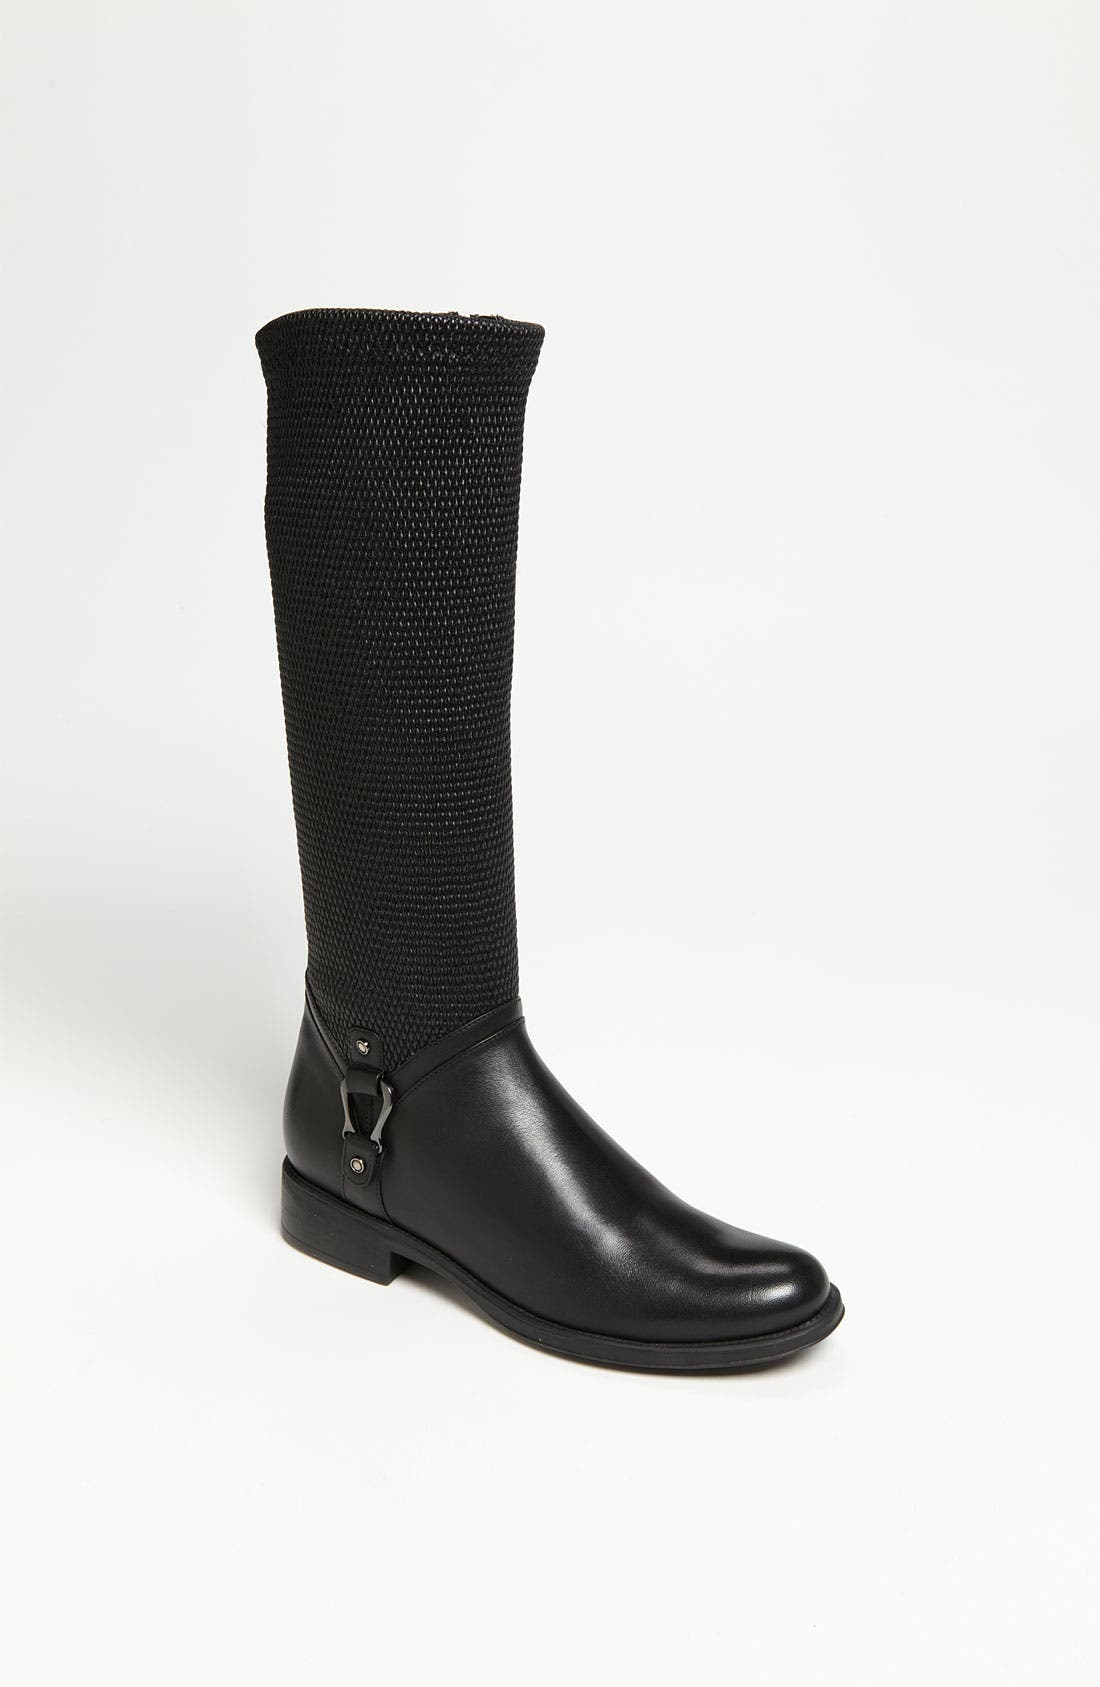 Alternate Image 1 Selected - Blondo 'Vergara' Waterproof Boot (Nordstrom Exclusive)